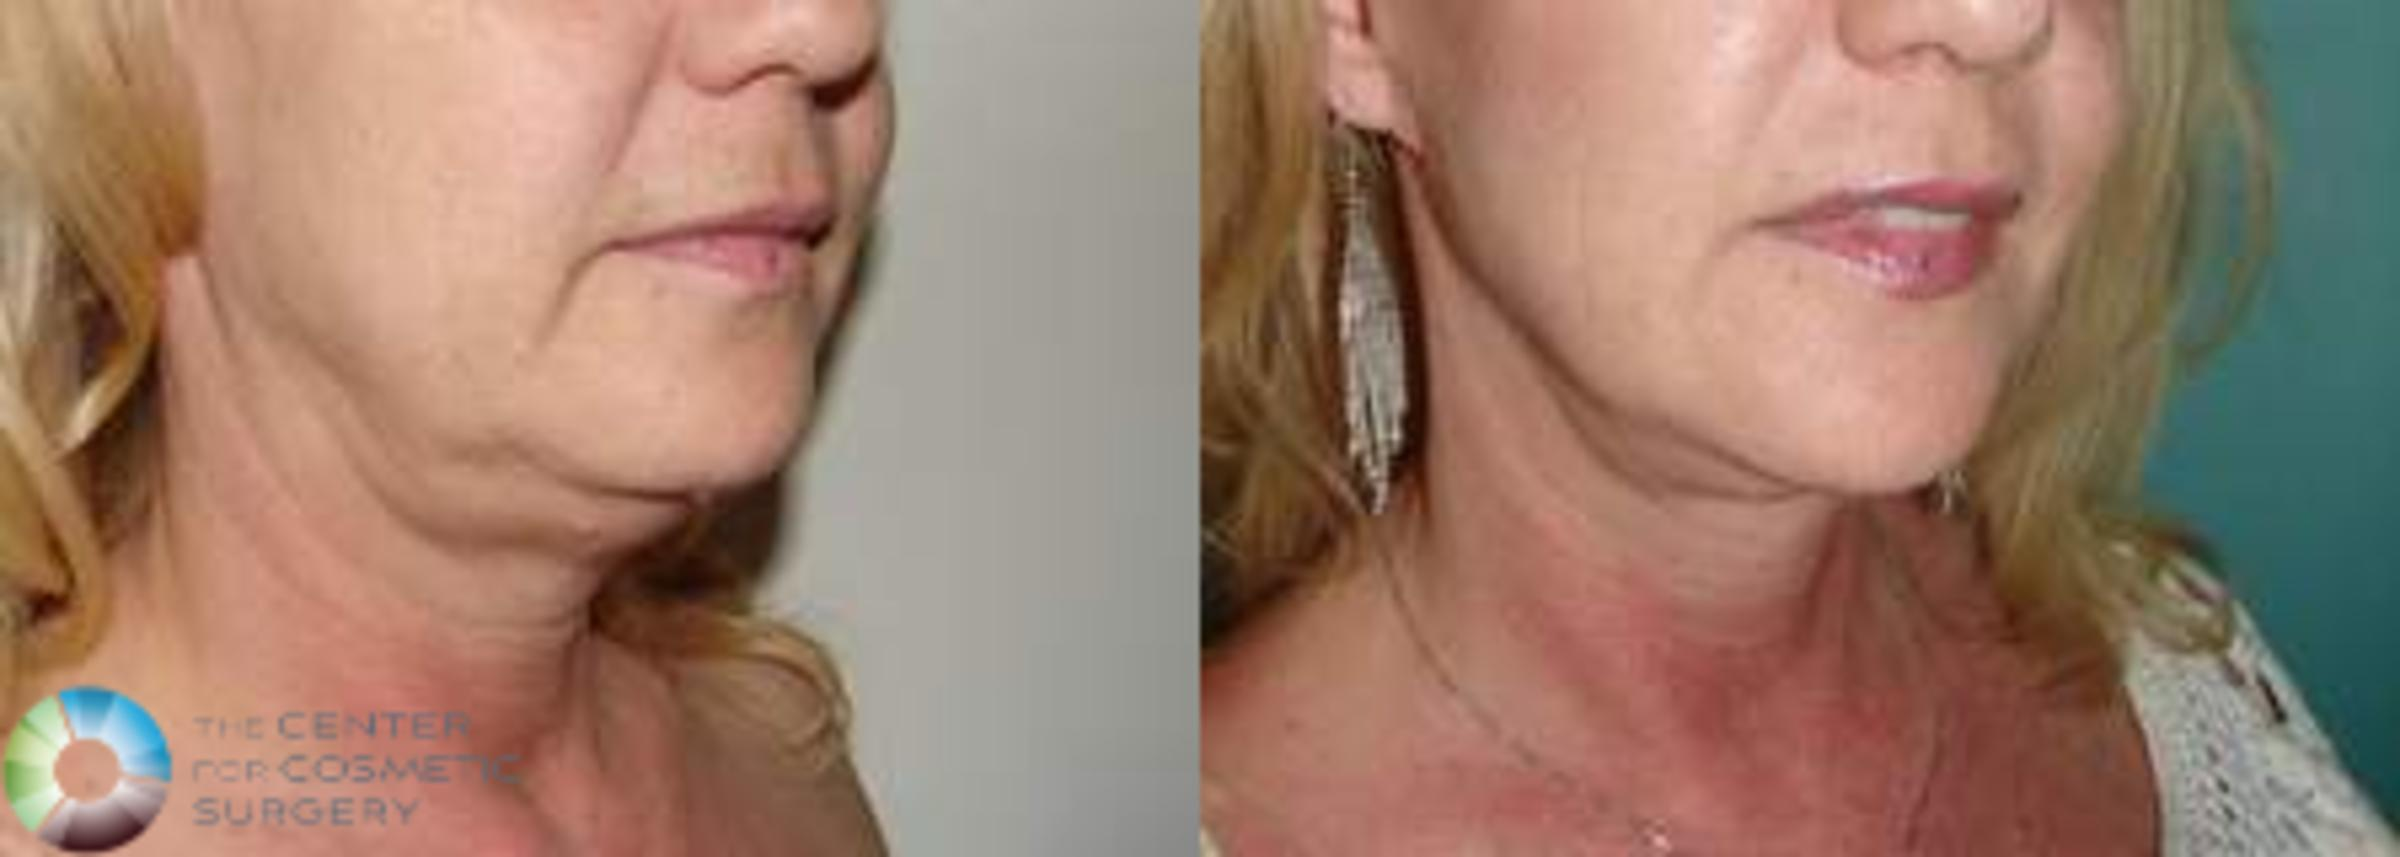 Mini Facelift Case 618 Before & After View #2 | Golden, CO | The Center for Cosmetic Surgery